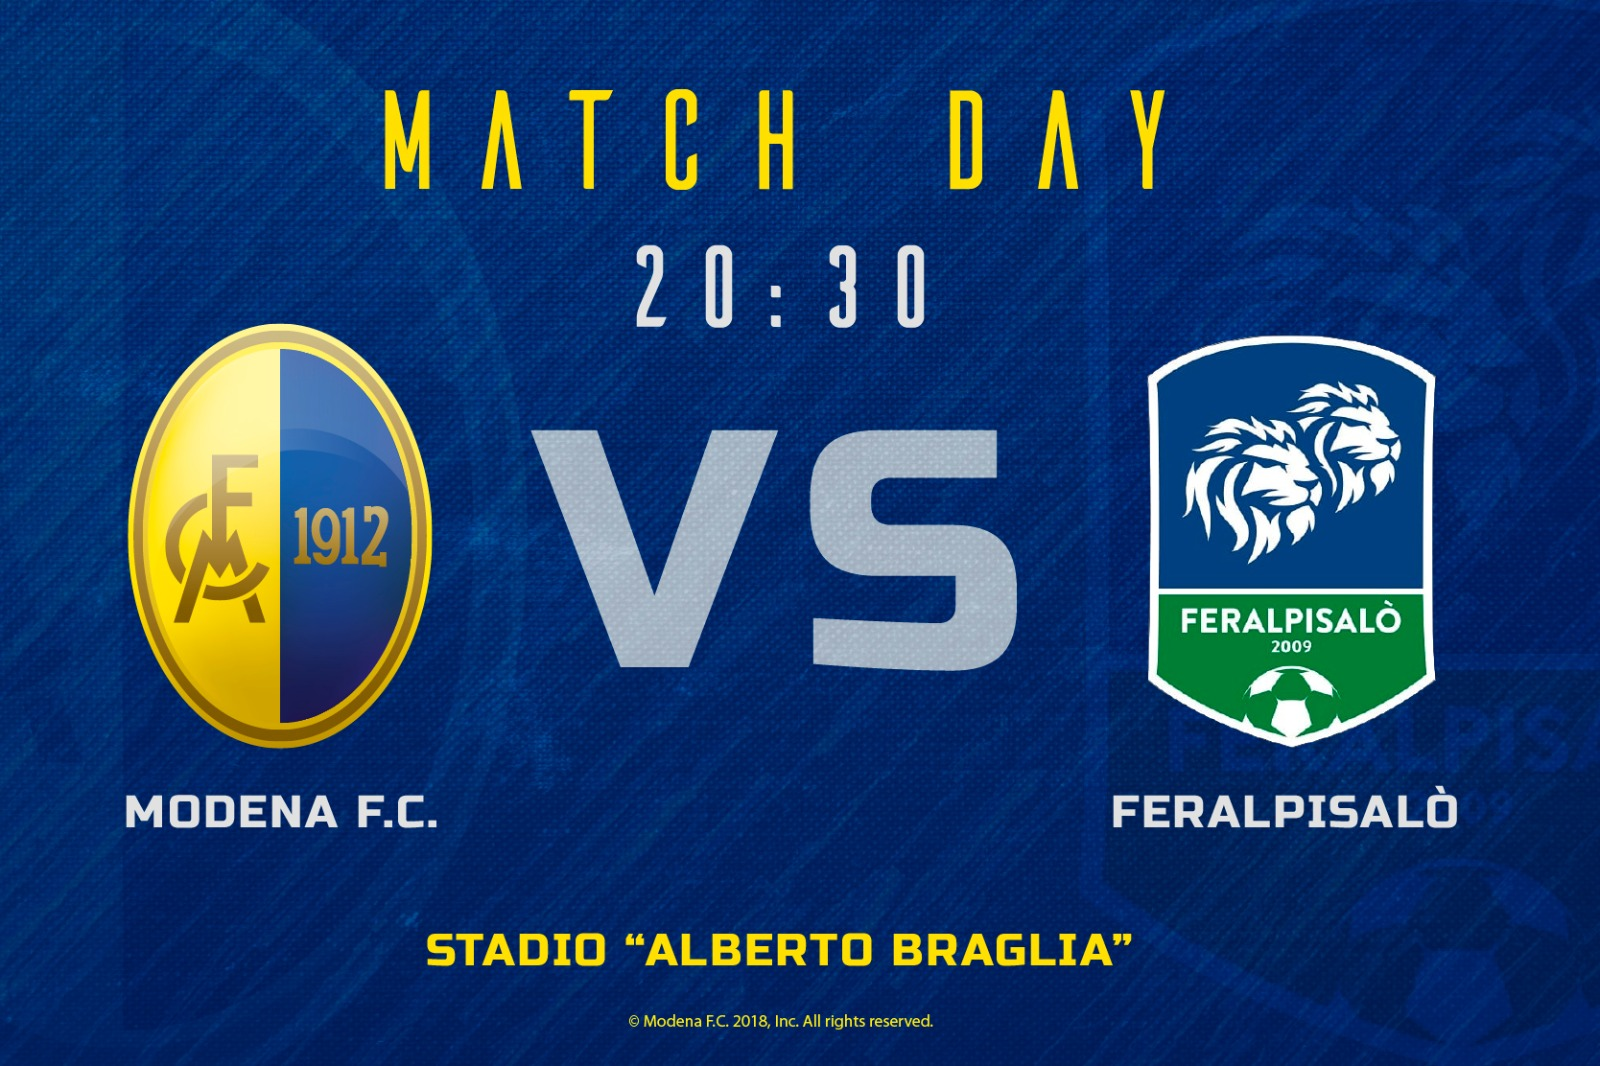 modena_feralpisalo match day